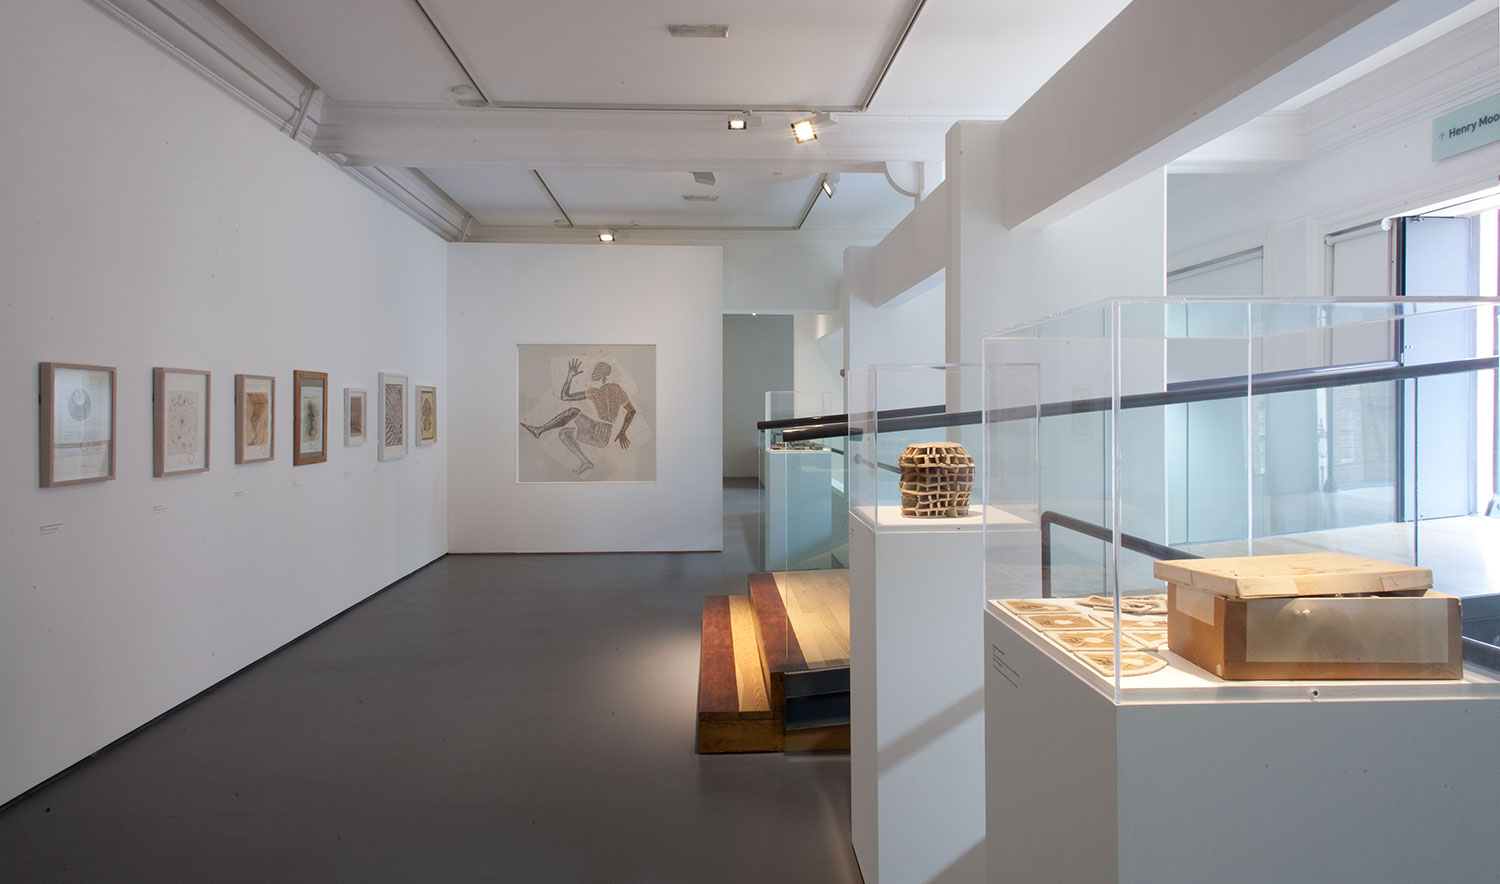 Installation view of the Upper Sculpture Study Gallery